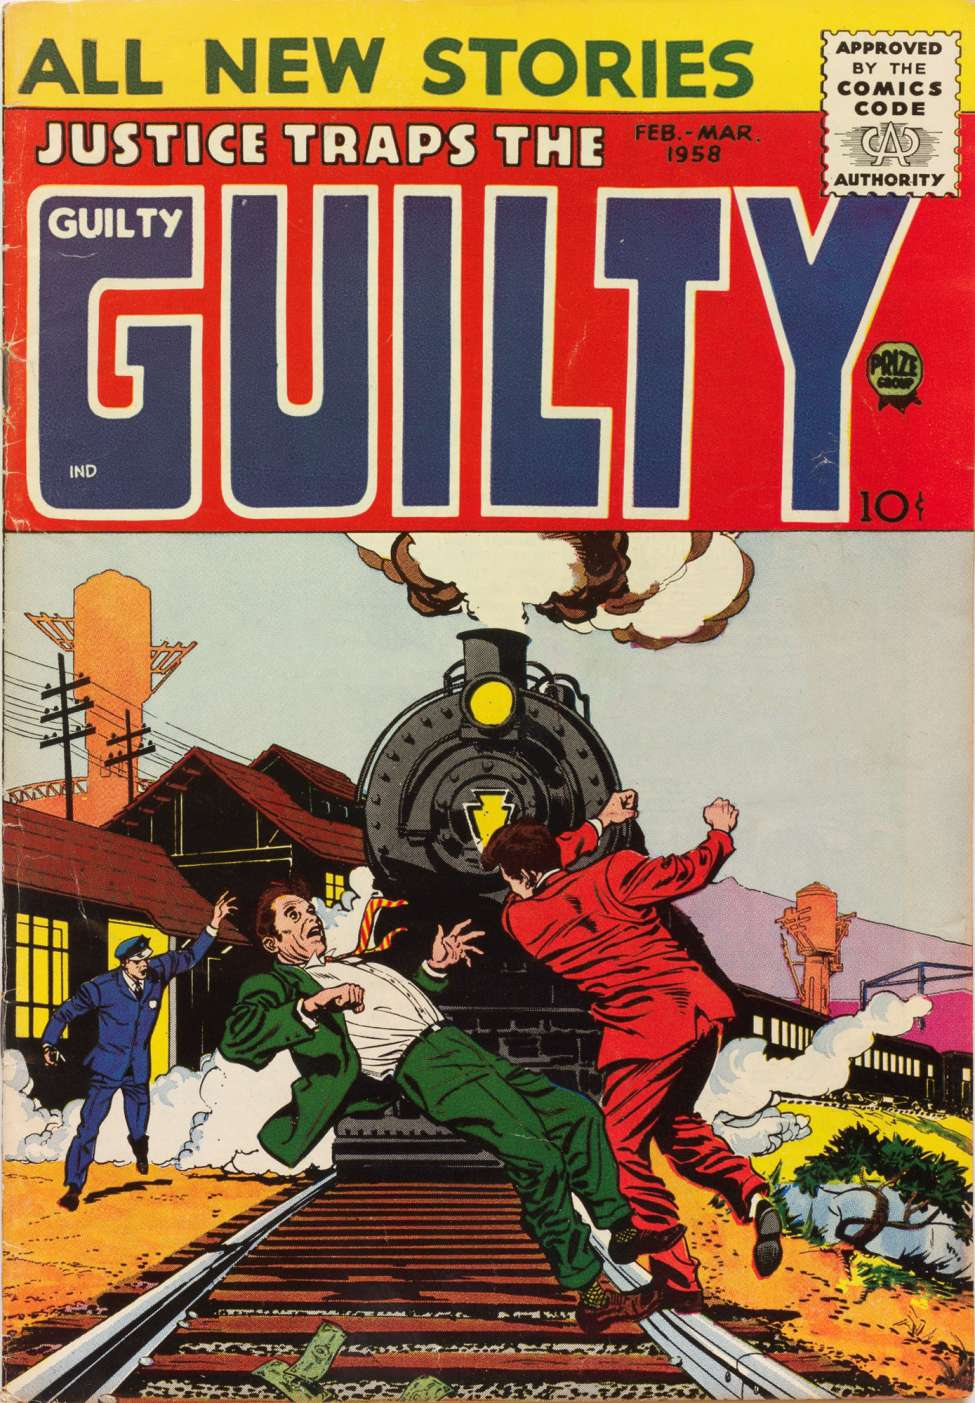 Comic Book Cover For Justice Traps the Guilty v11 1 [91]